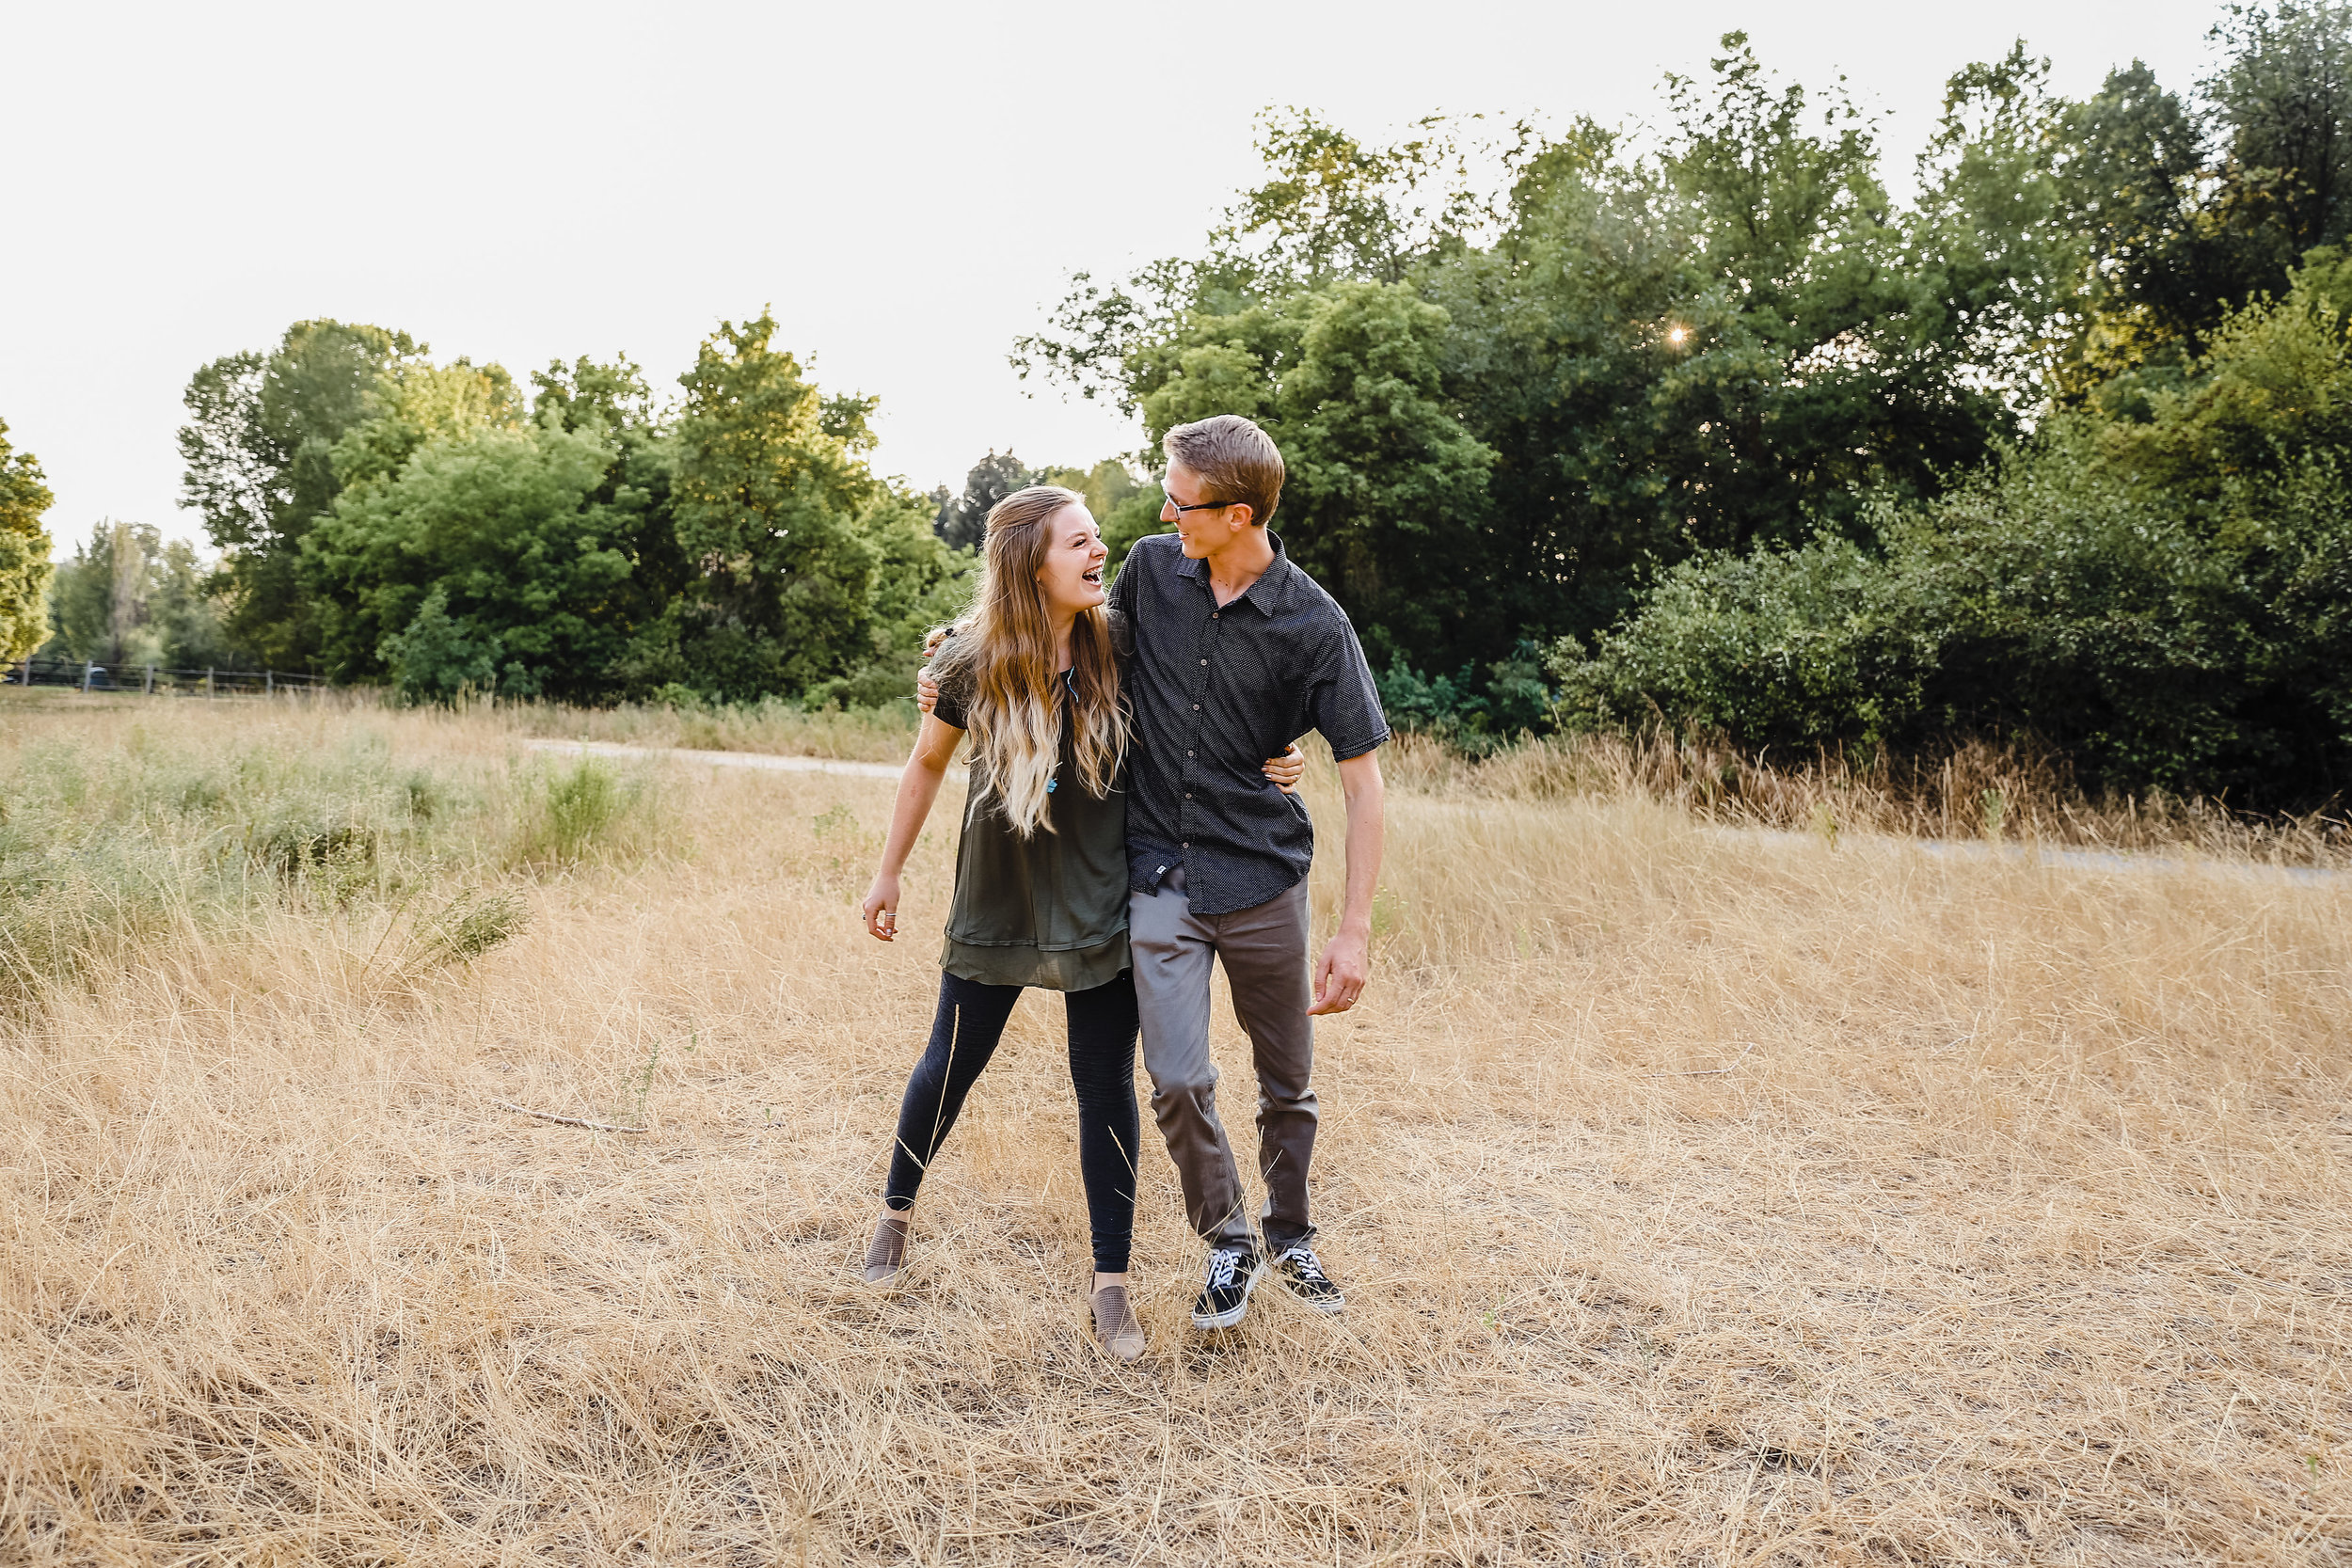 best couples photographer logan utah running hugging walking laughing playful